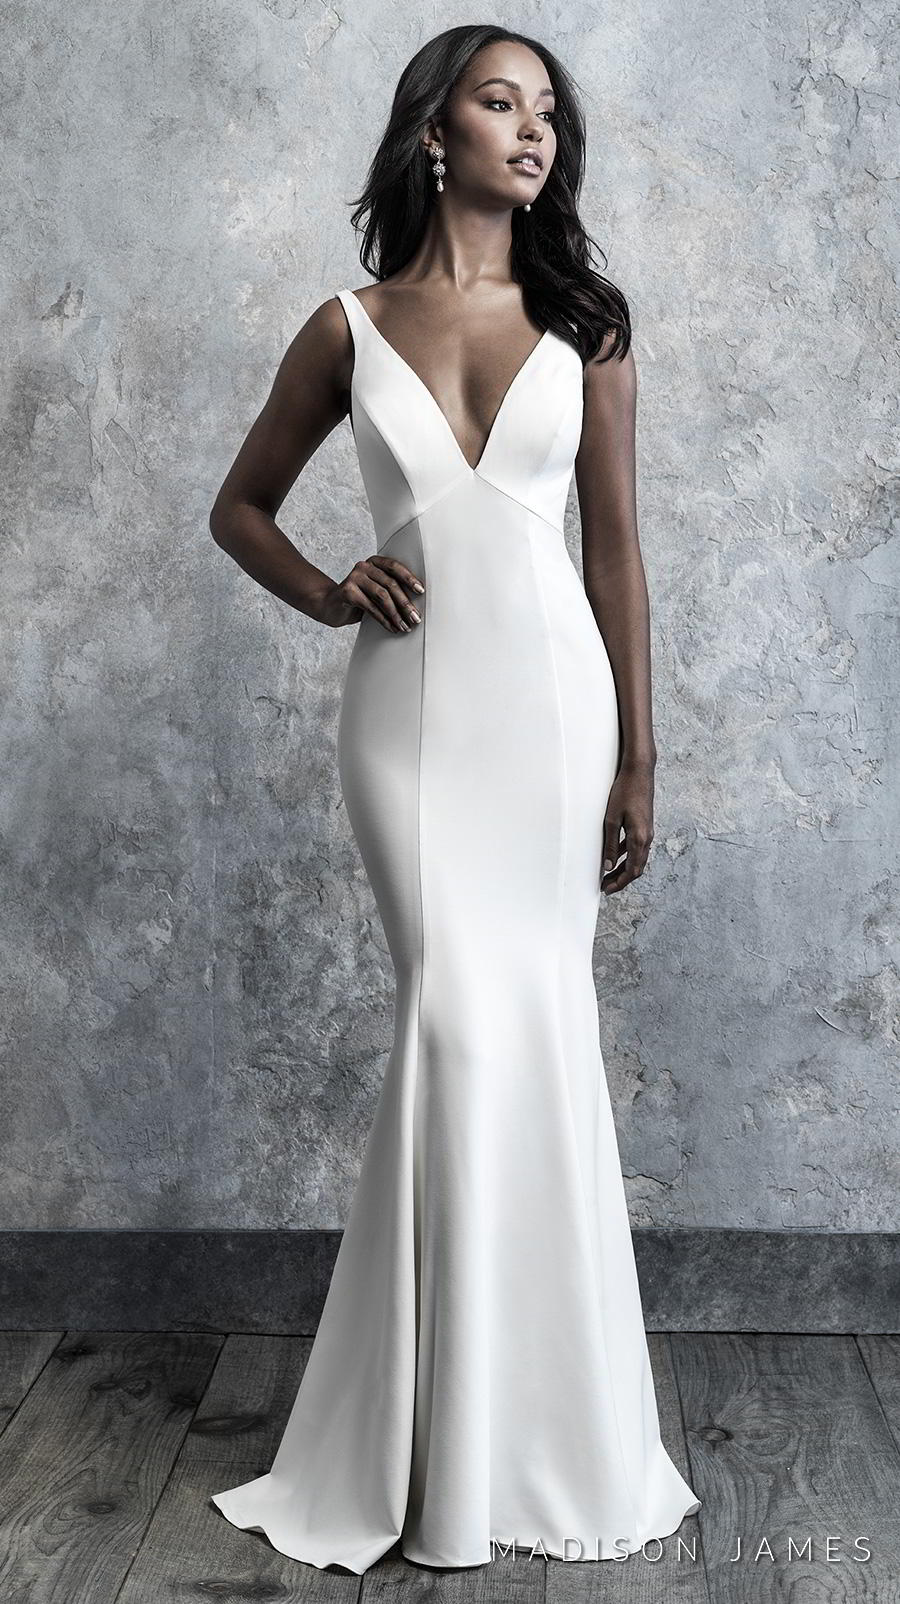 madison james 2019 bridal sleeveless with strap deep v neck simple minimalist elegant classy fit and flare wedding dress backless low v back chapel train (504) mv